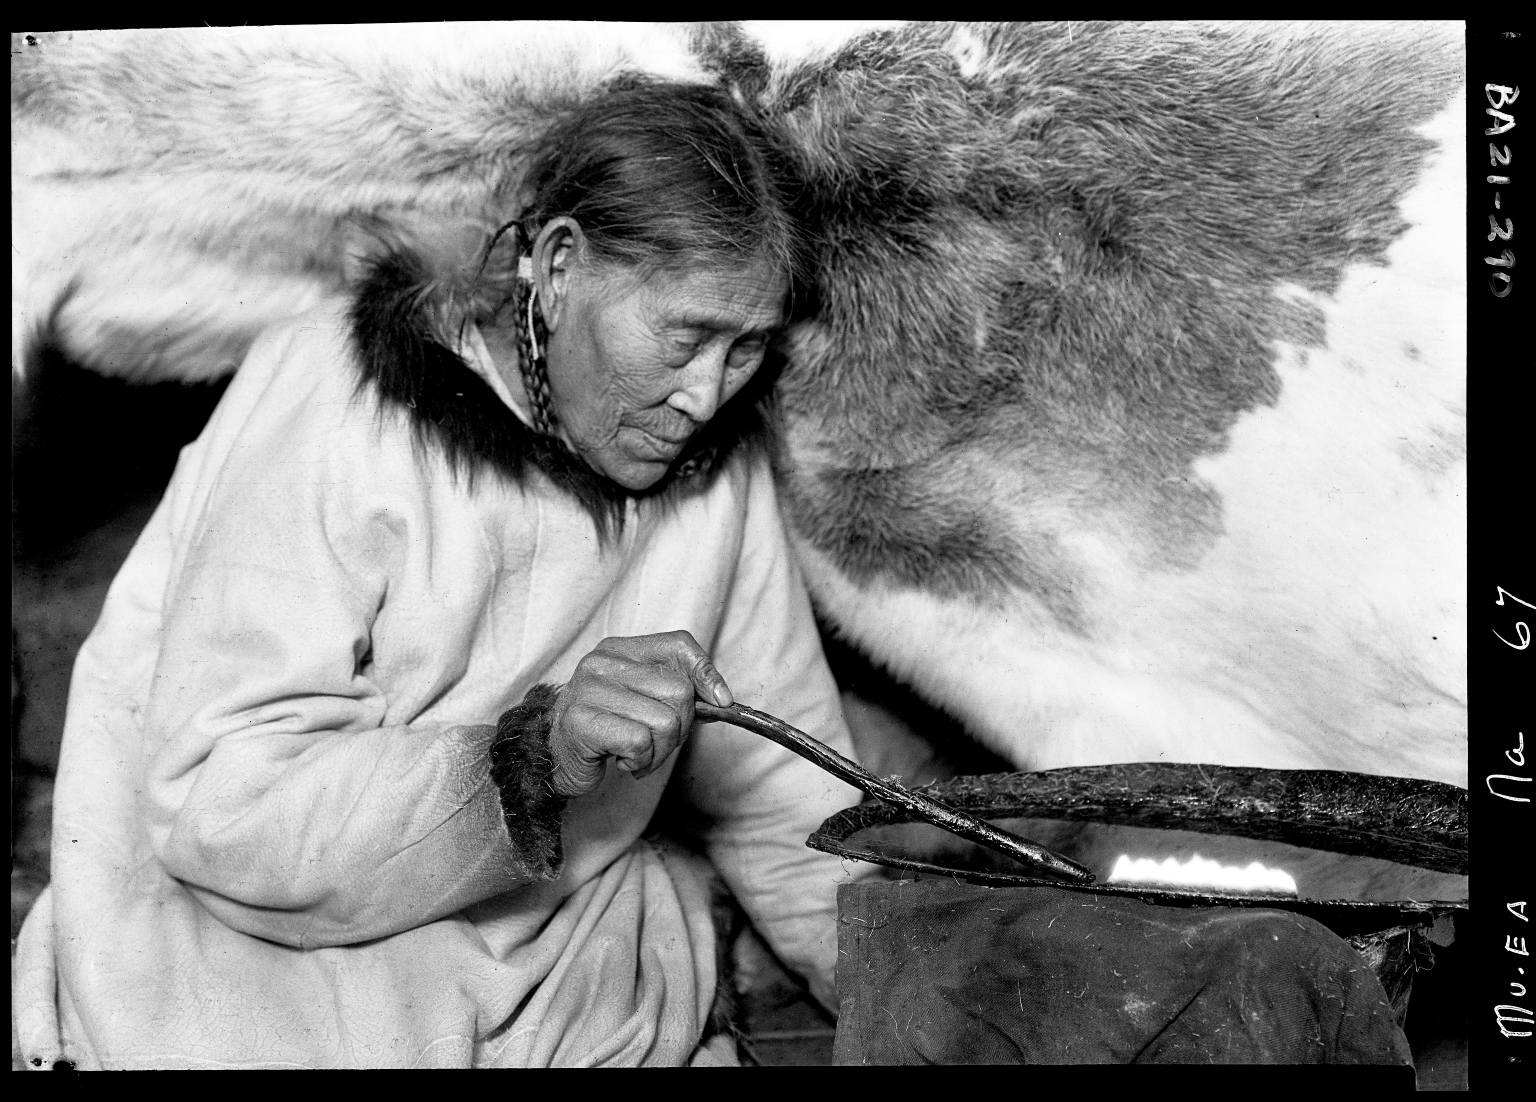 Eskimo woman with a seal oil lamp